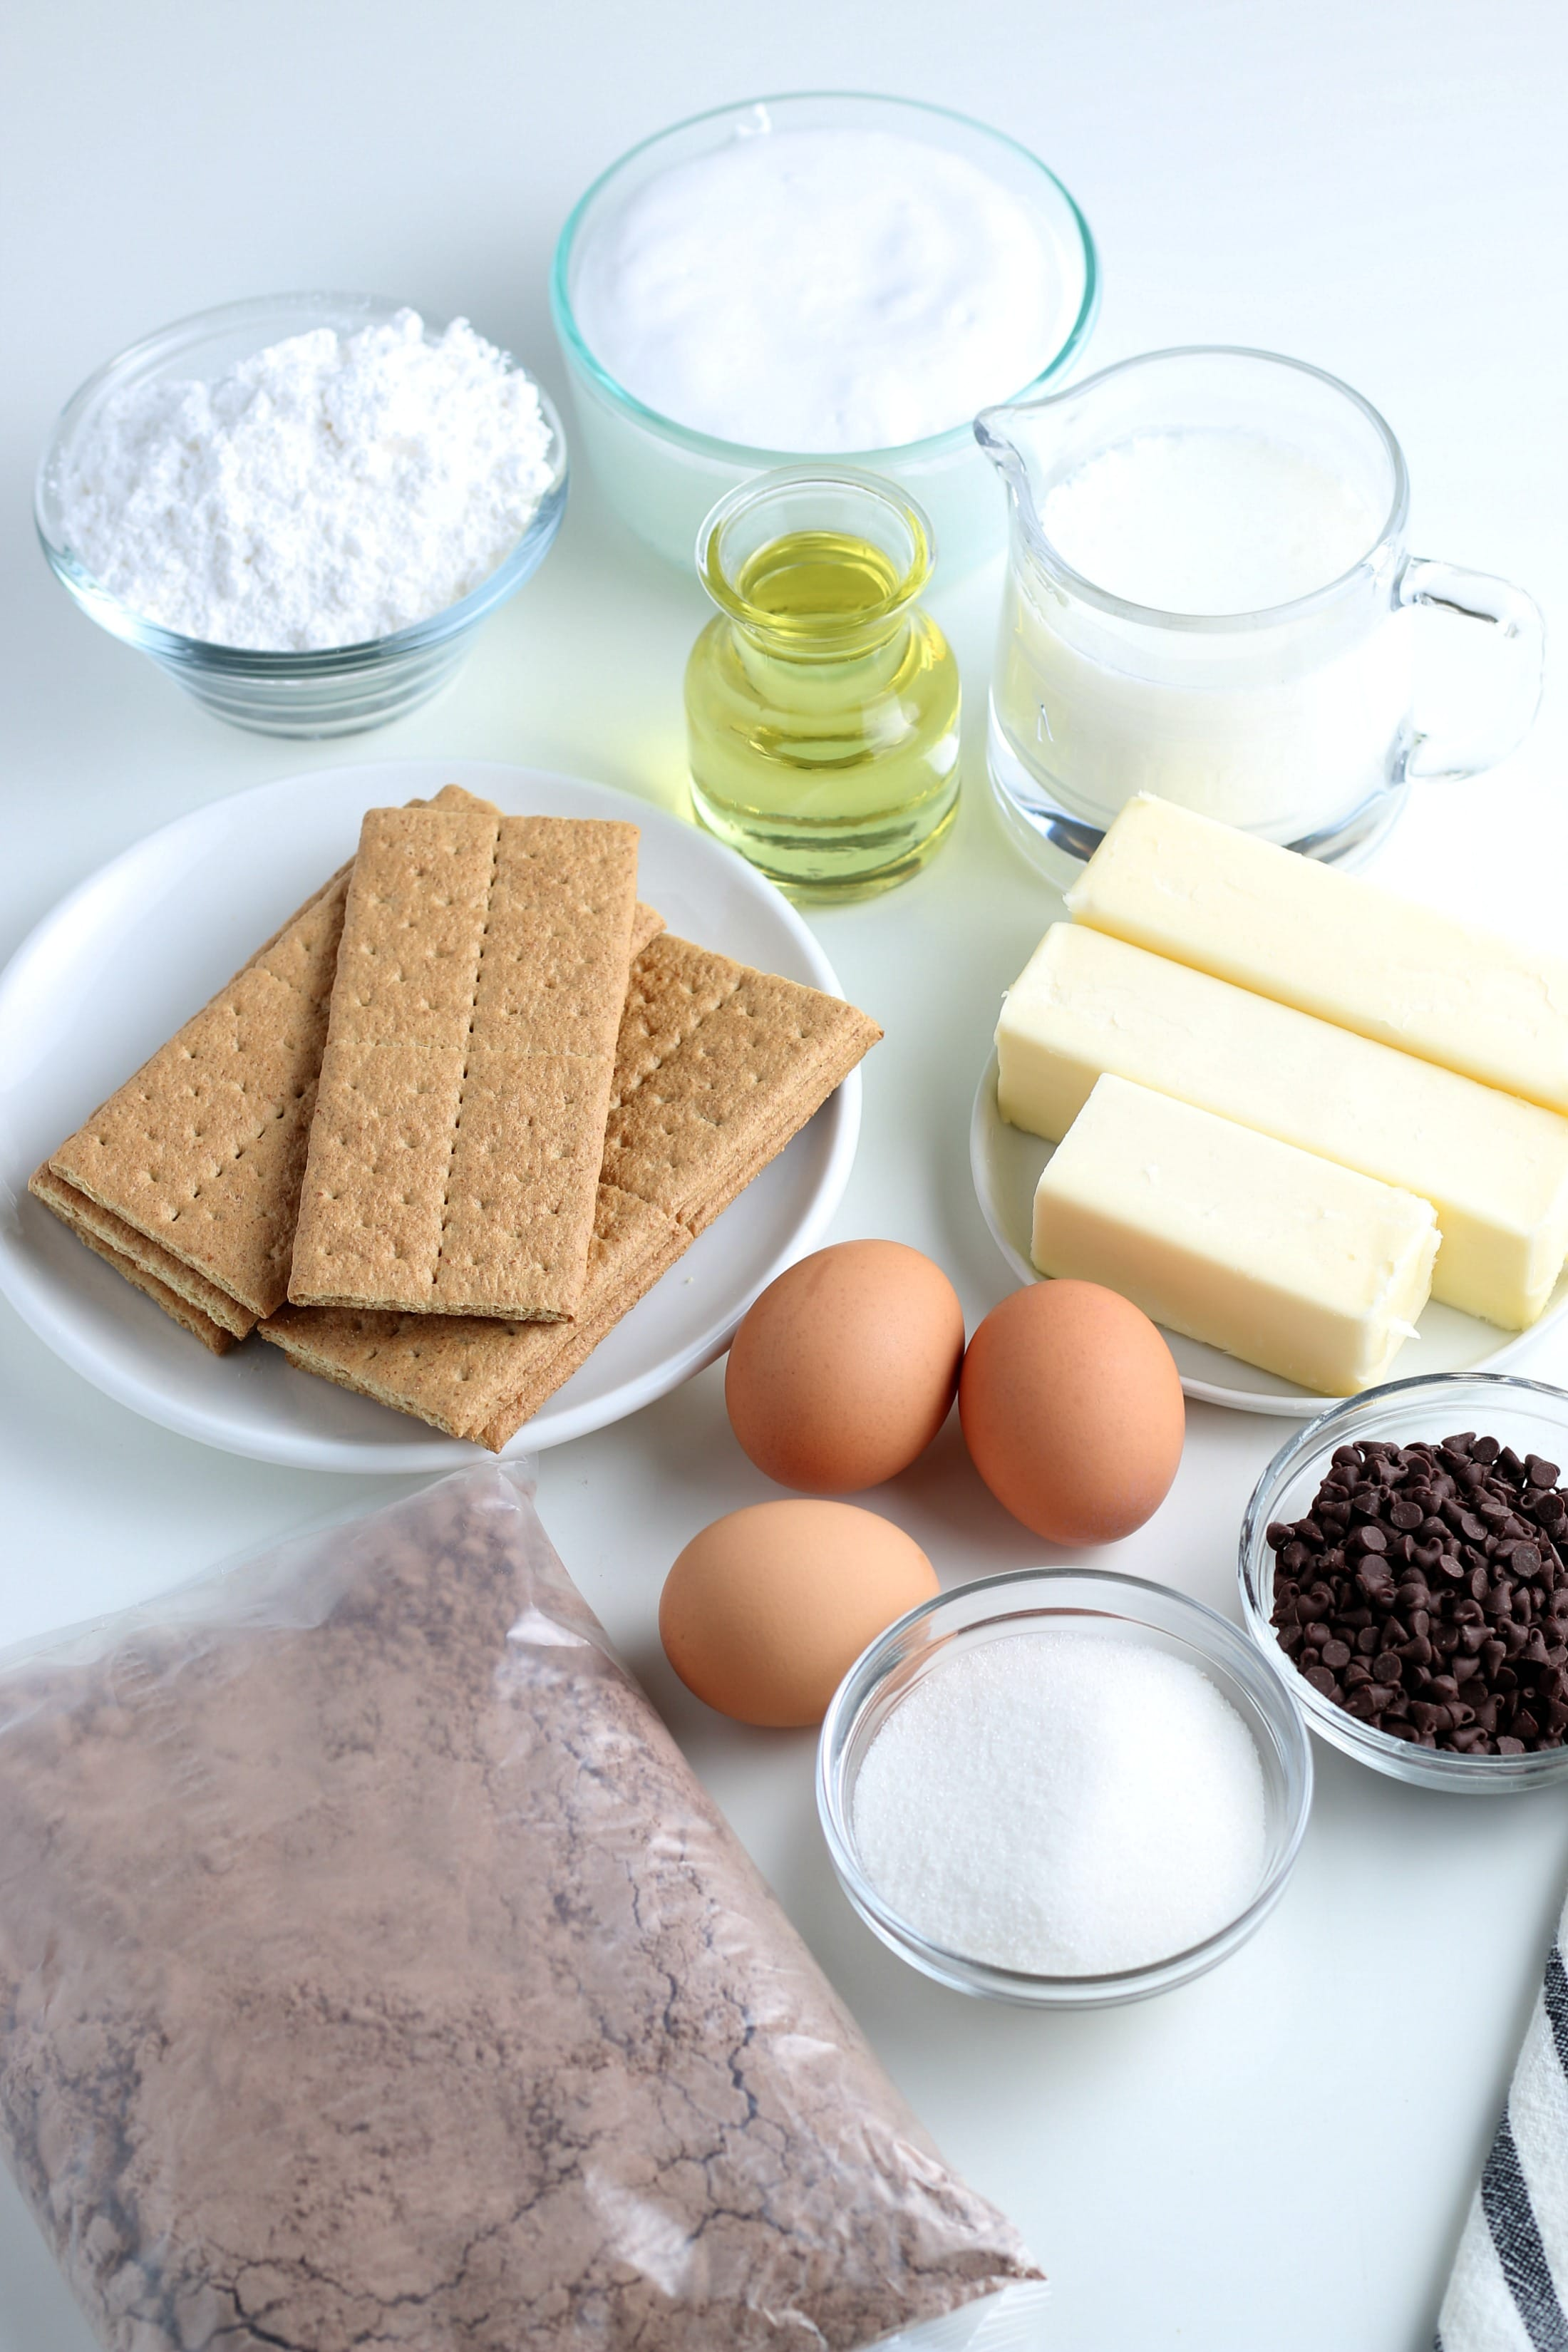 ingredients for s'mores cupcakes laying out on a white countertop.